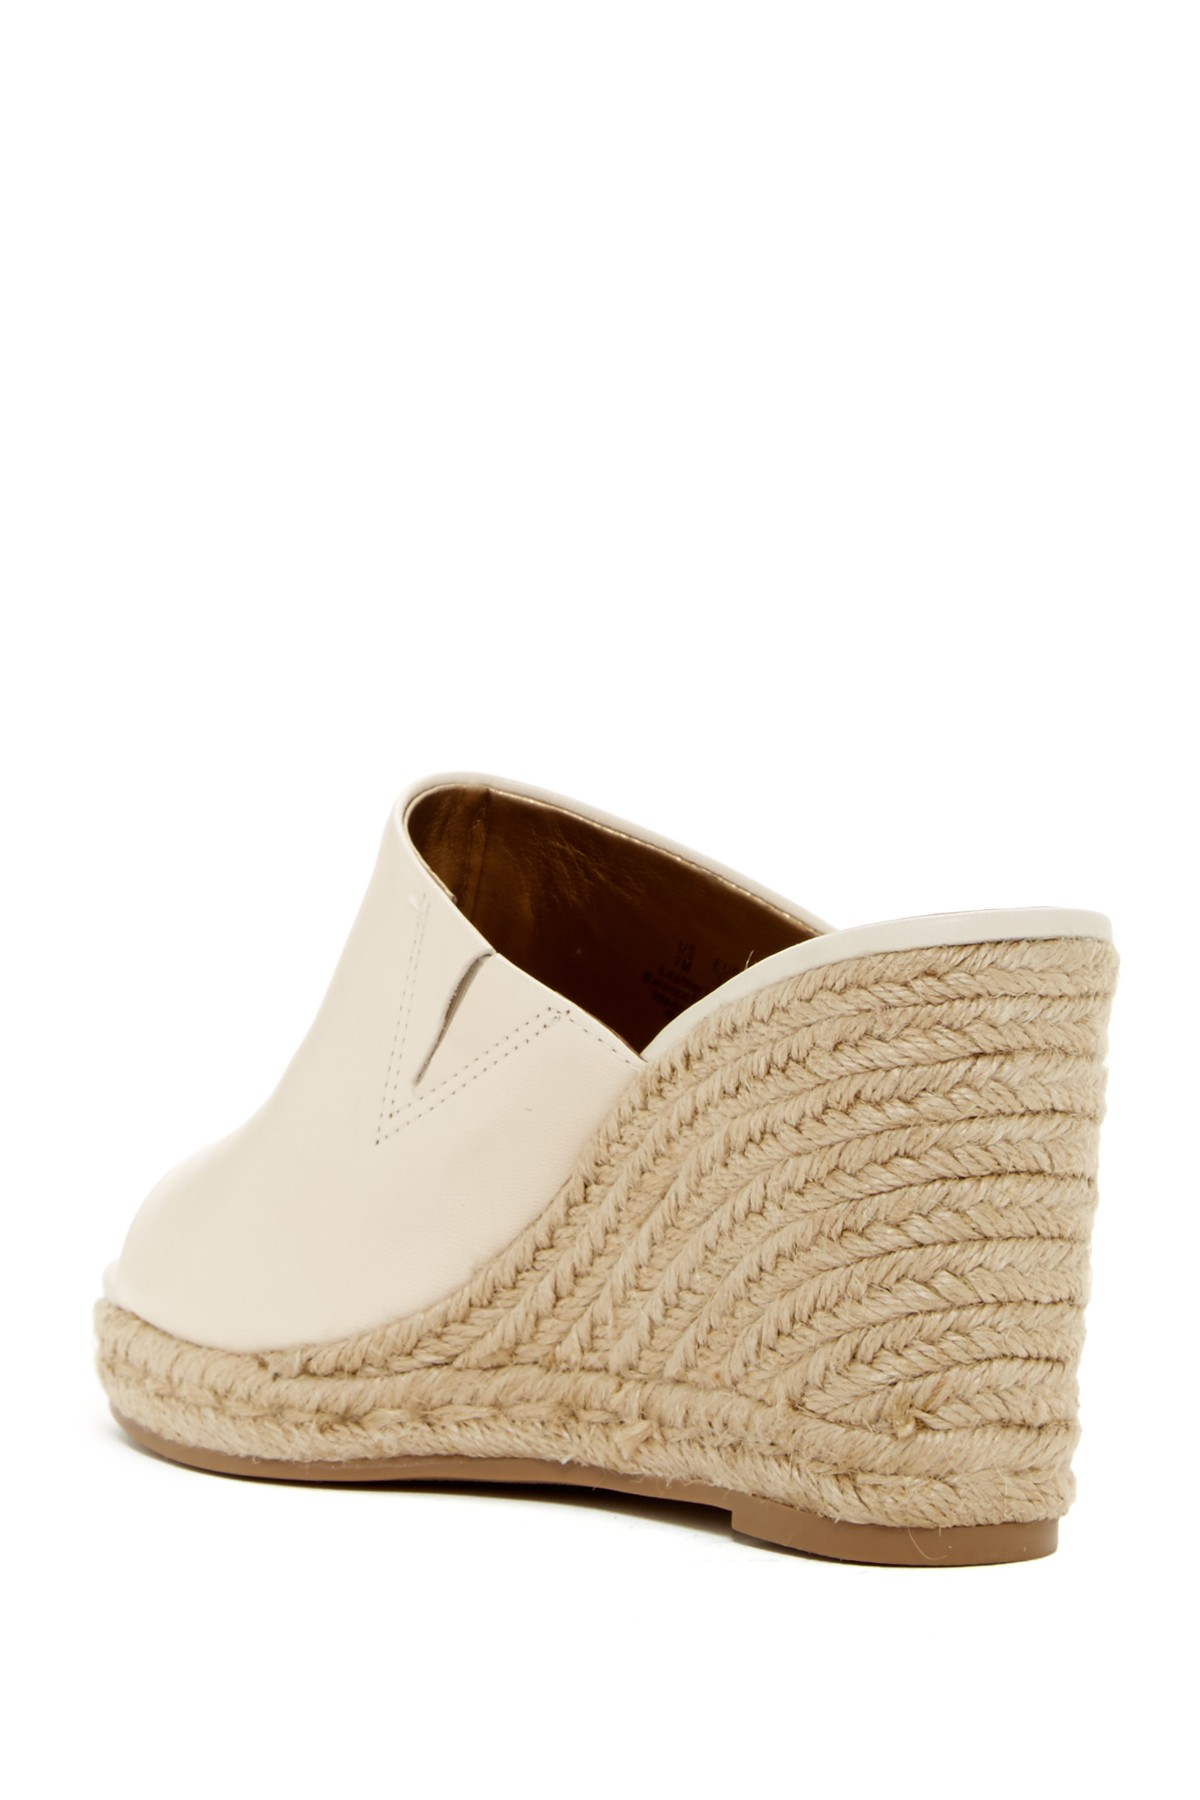 Ivory Wedge Leather Shoes